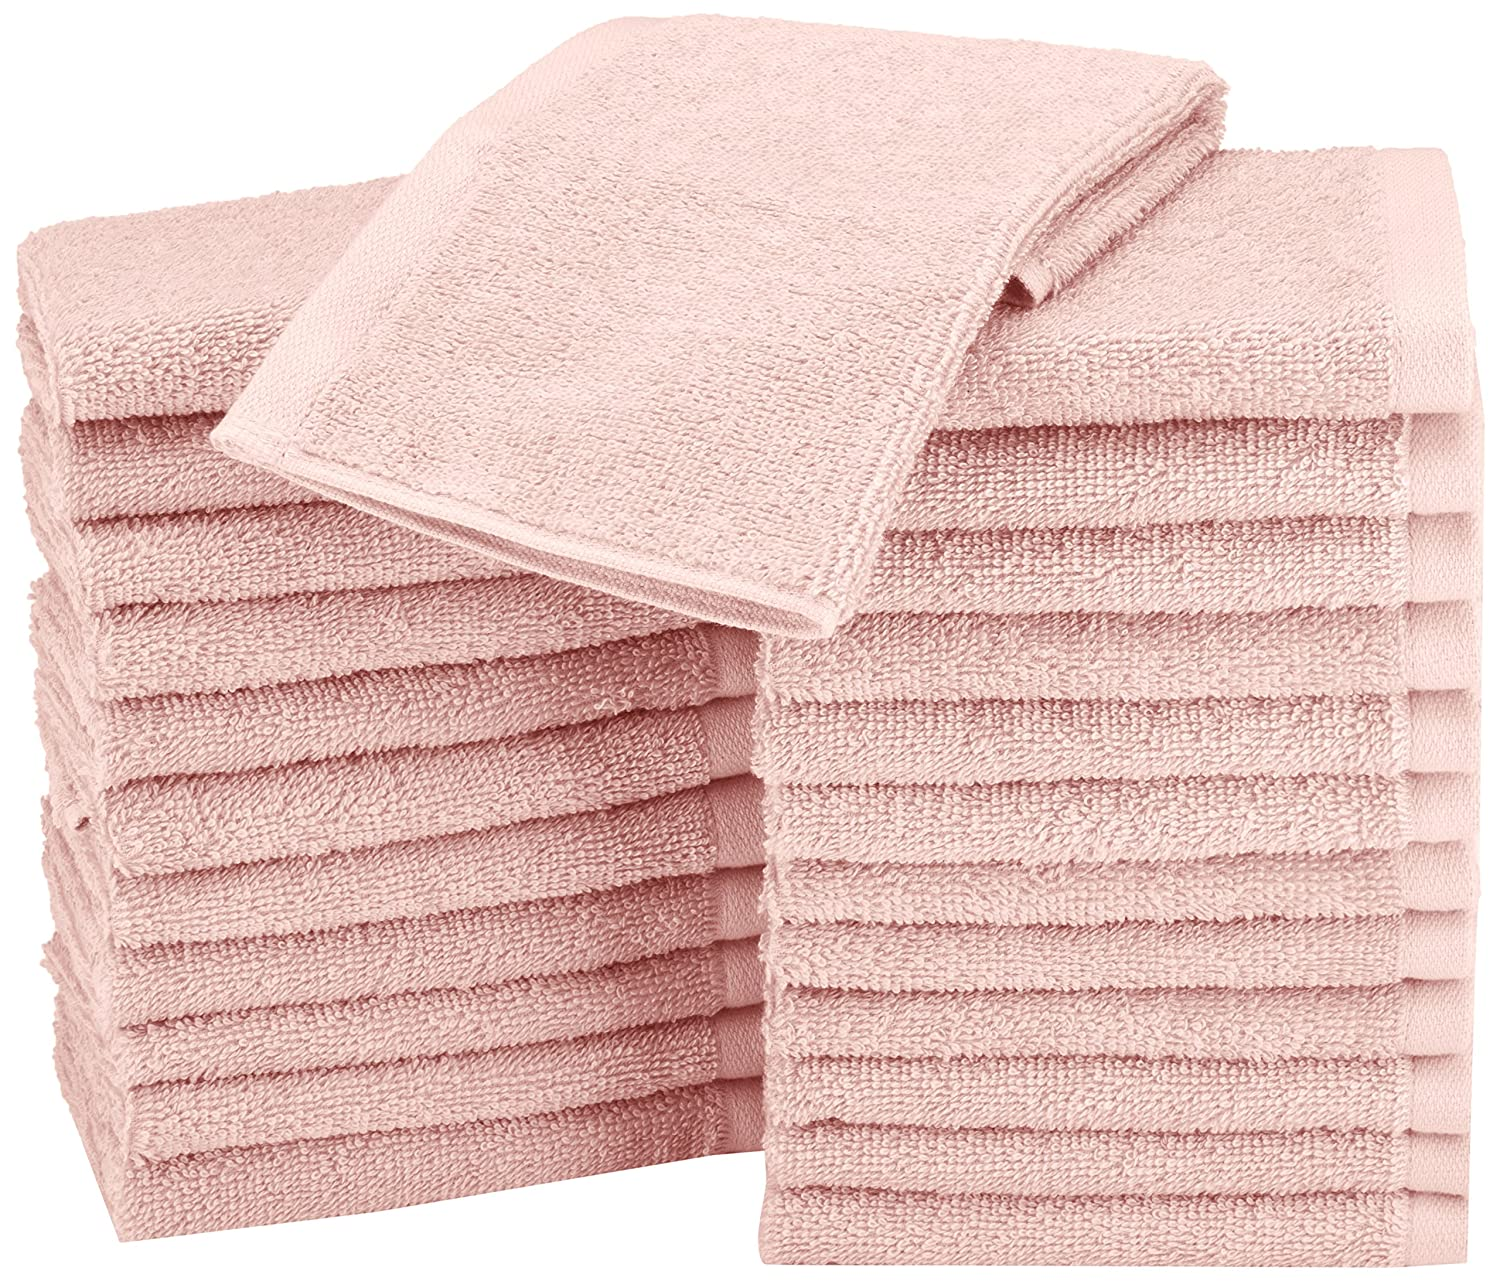 AmazonBasics Washcloth - Pack of 24, Petal Pink